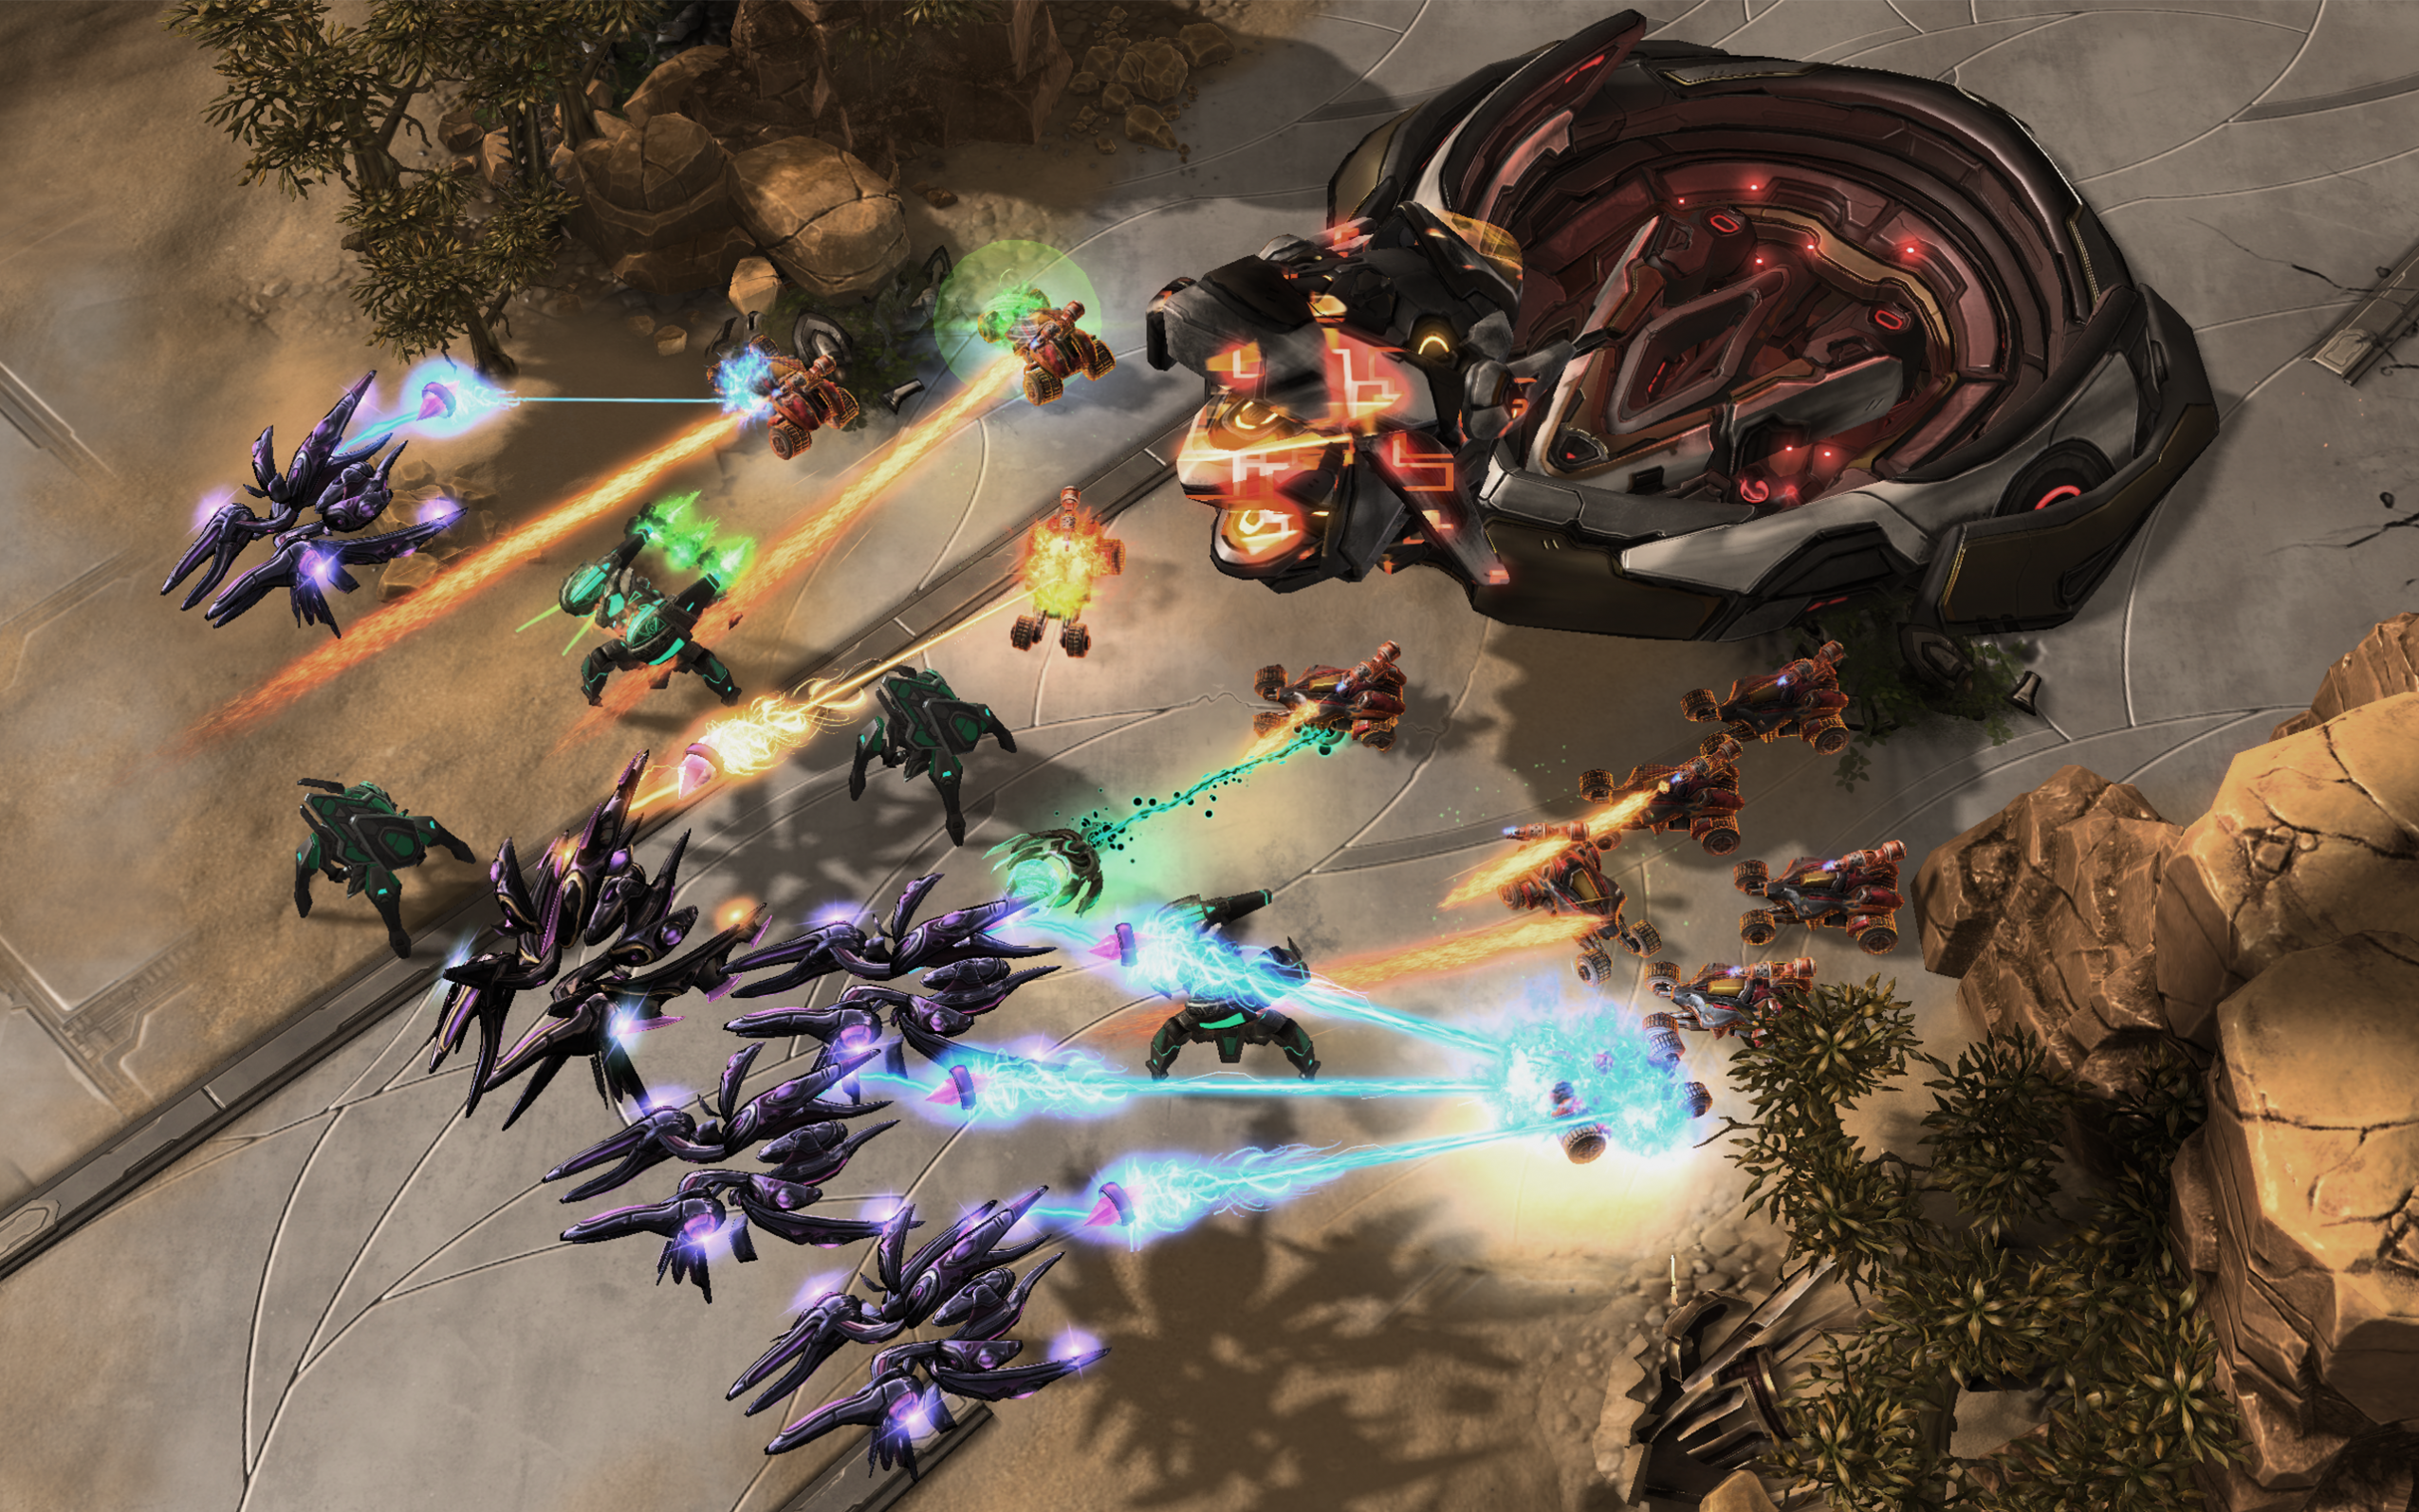 DeepMind, a company owned by Google, developed an AI program to battle professional players in the game StarCraft II.